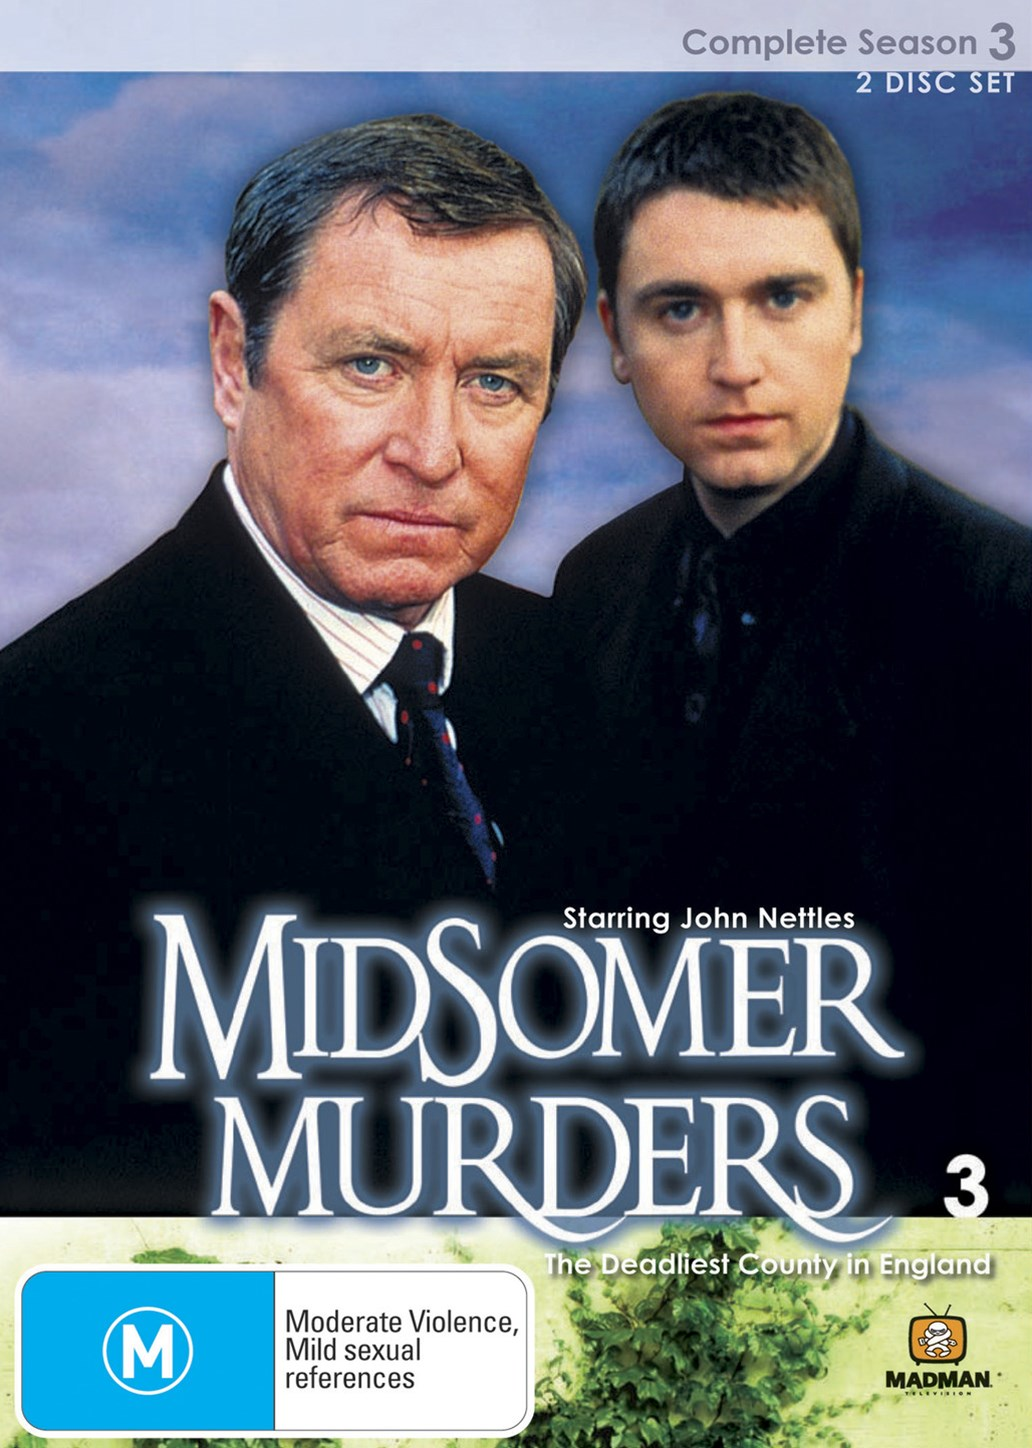 Midsomer Murders Season 3 (Single Case 2 DVD)